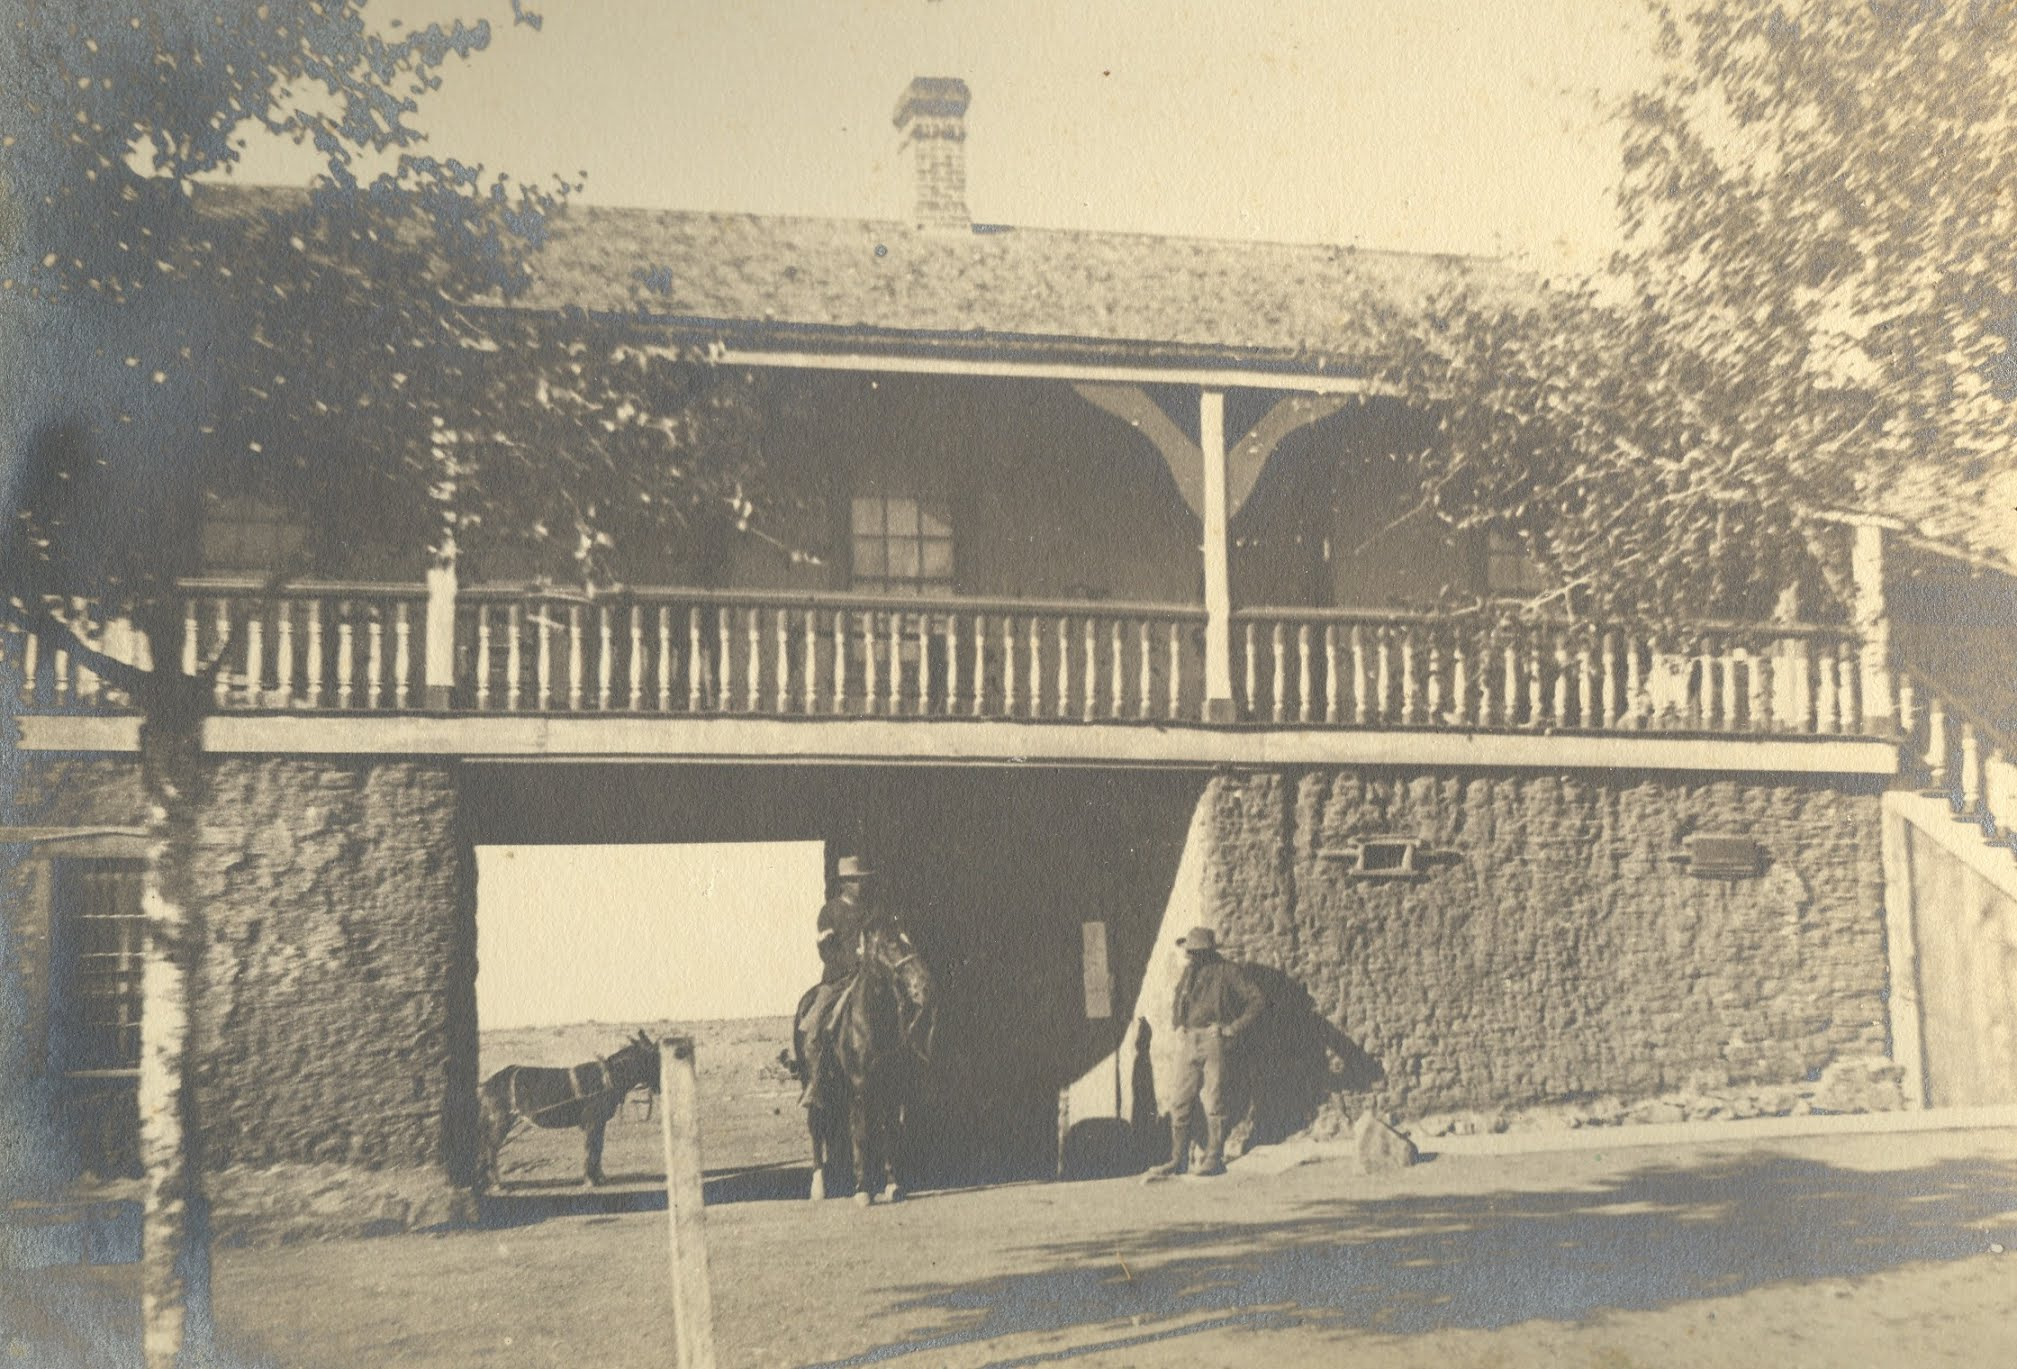 Sally Port at Fort Bayard in the 1880s, looking south from the Parade Ground